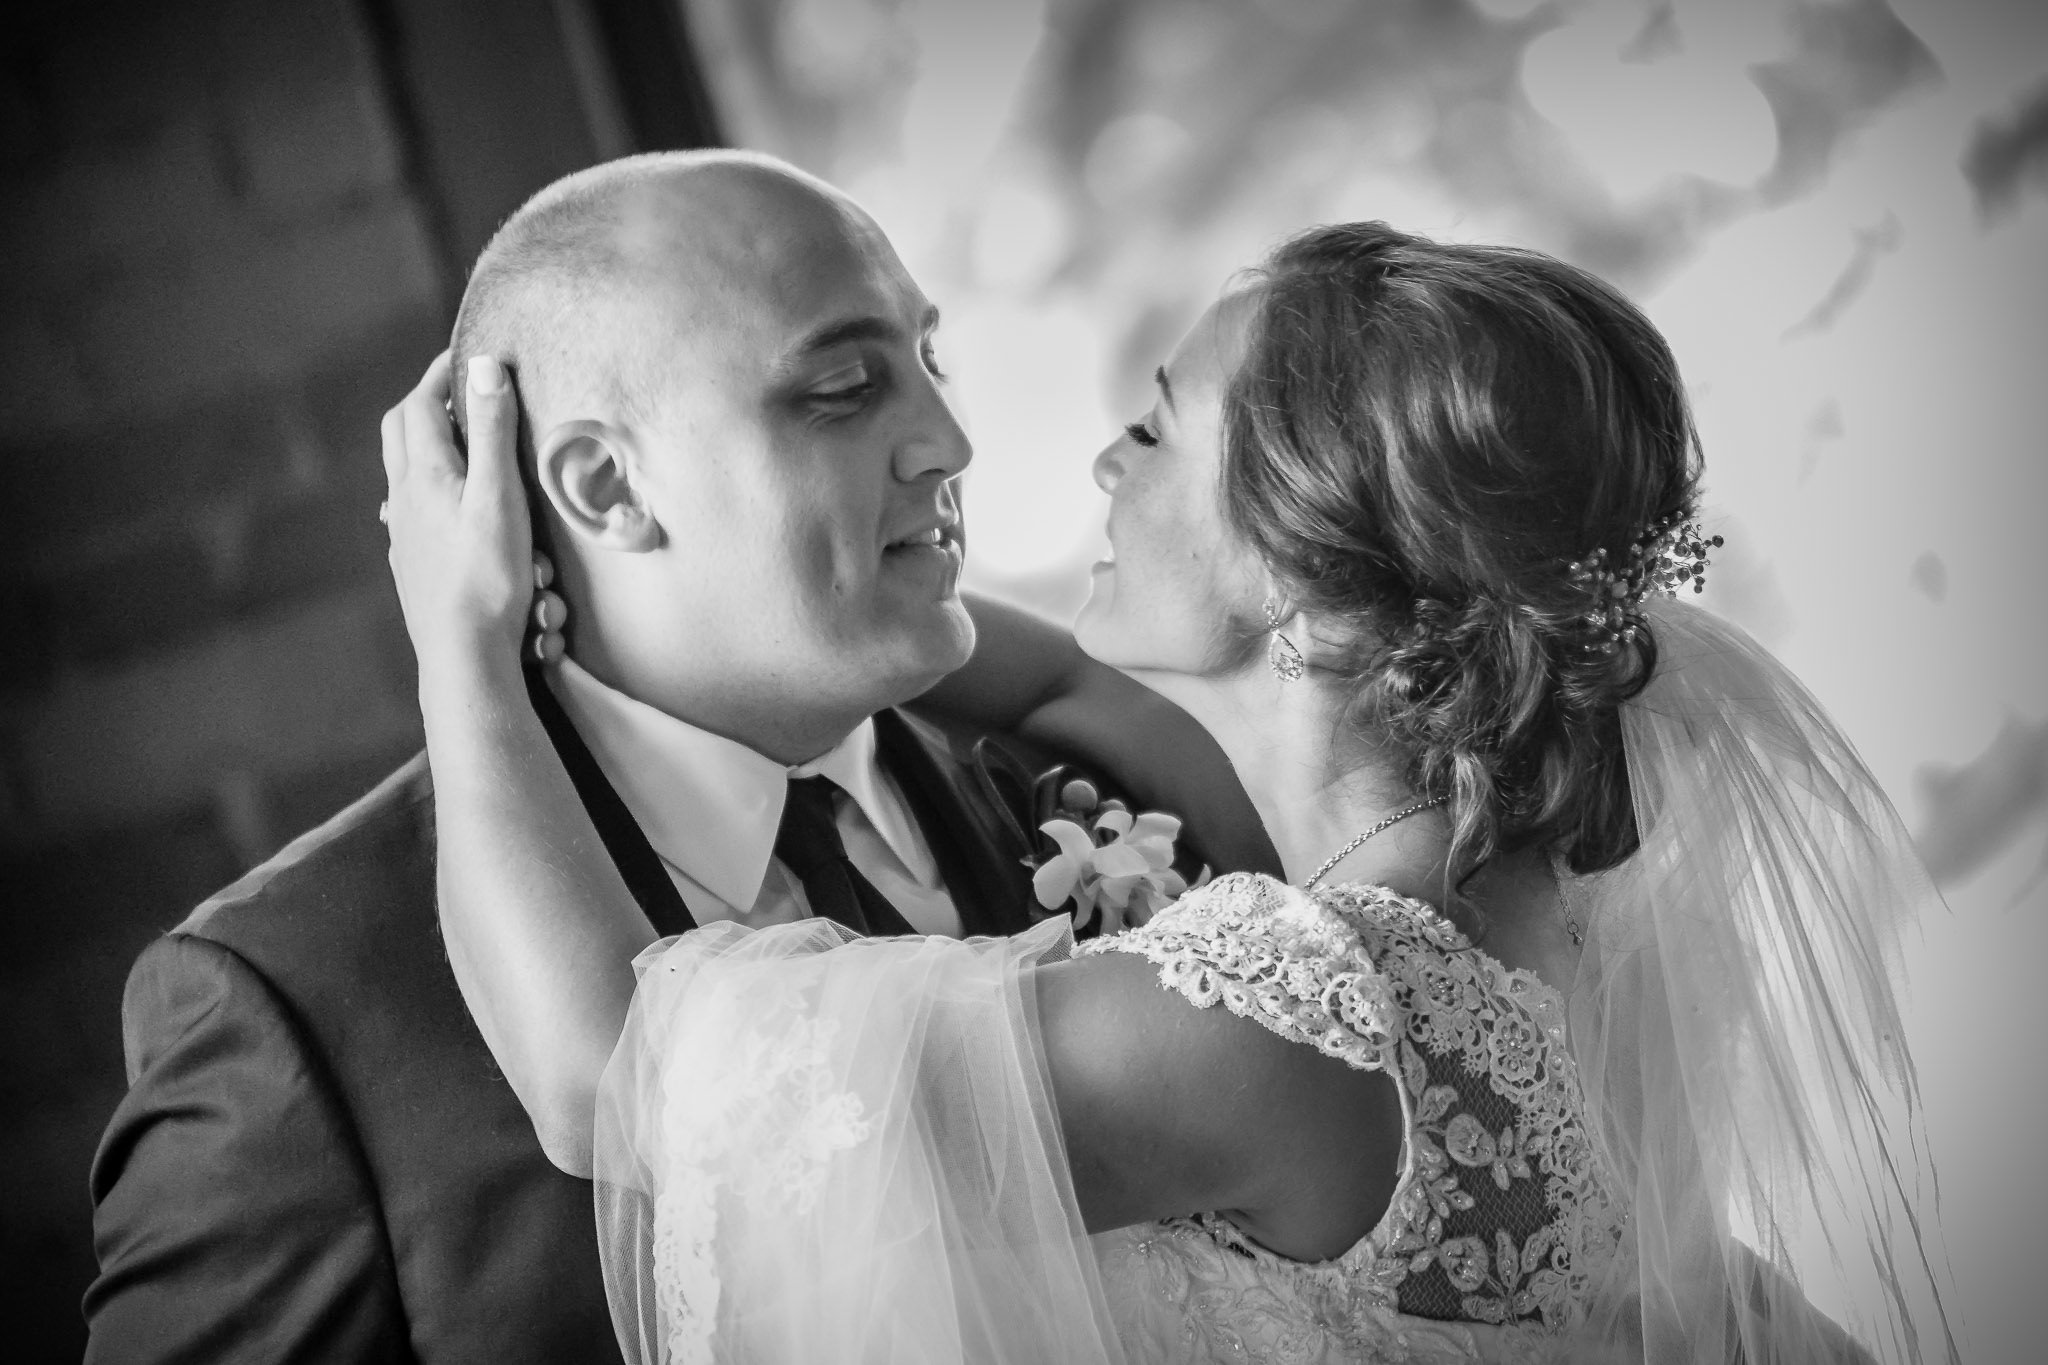 One of the best wedding photographers in Greenville SC photo of bride embracing groom during reception